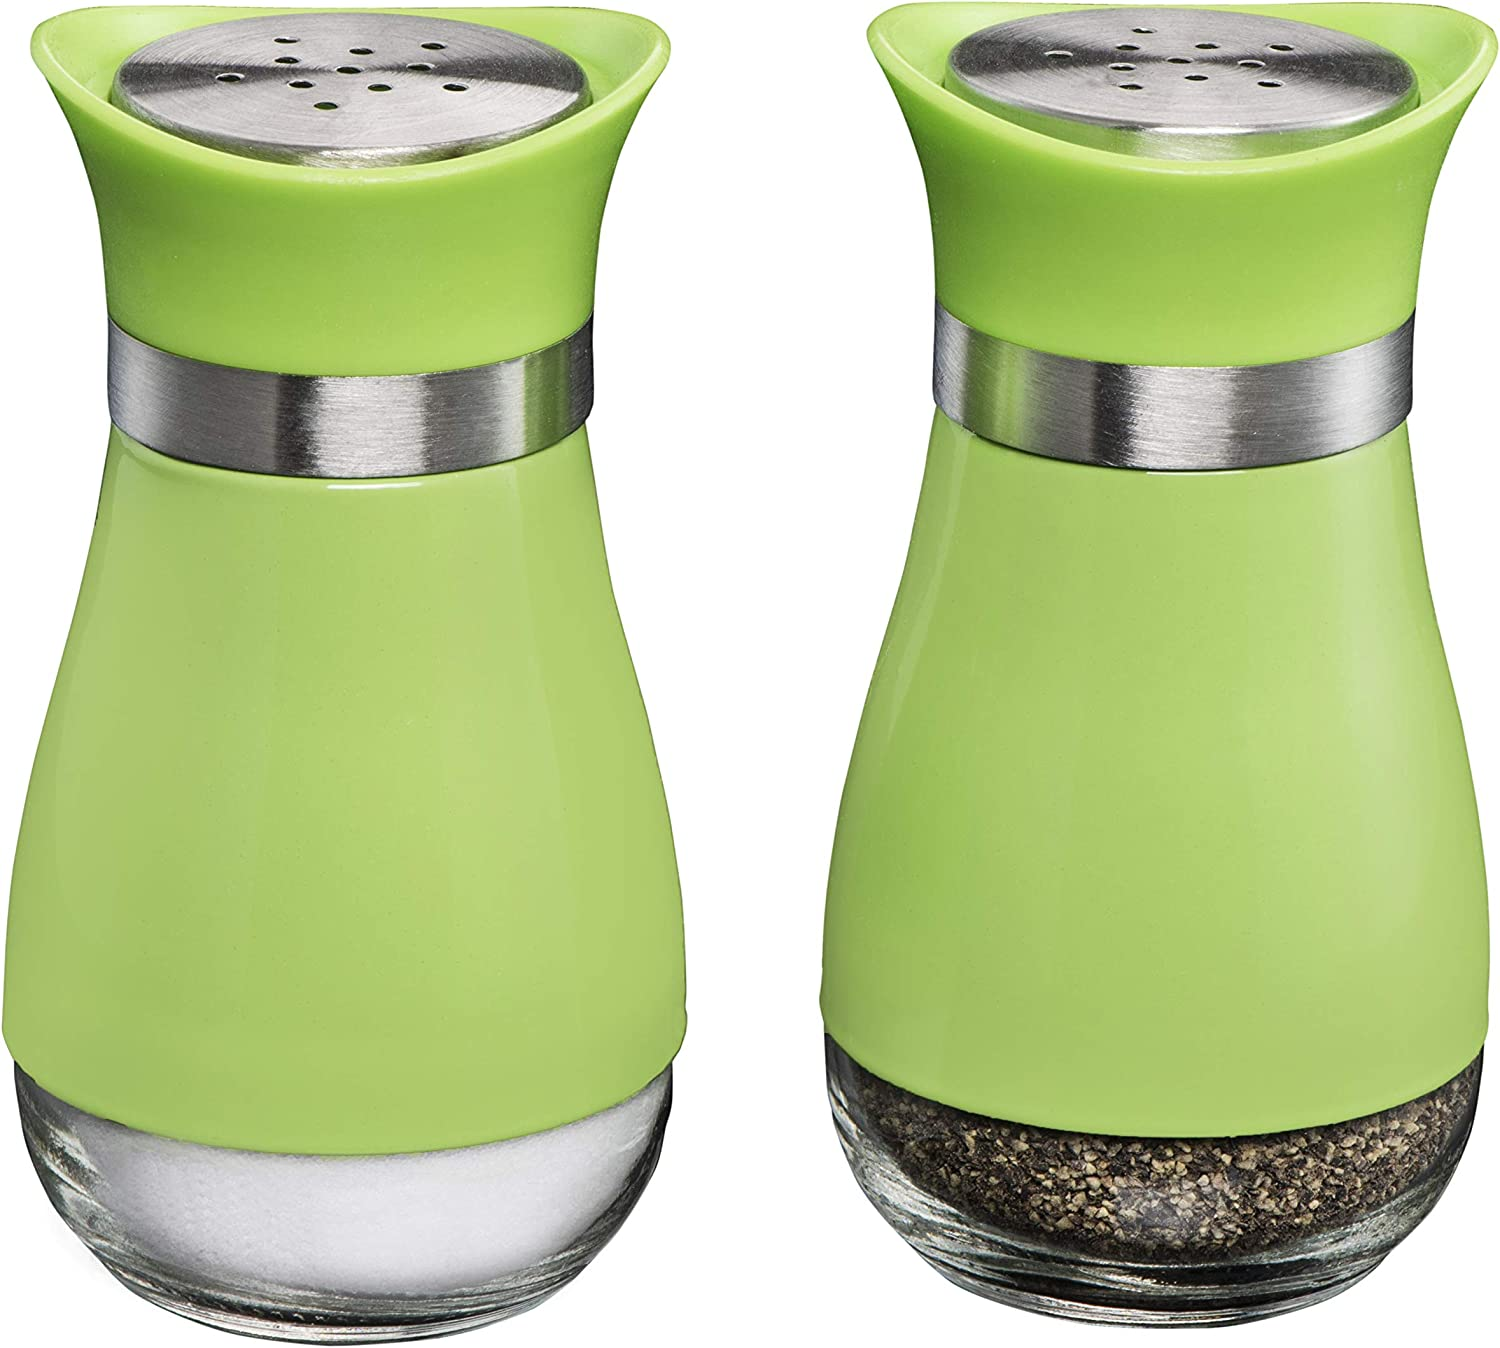 MITBAK Salt and Pepper Shakers (2-Pc. Set) Elegant w/Clear Glass Bottom | Compact Cooking, Kitchen and Dining Room Use | Classic, Refillable Design